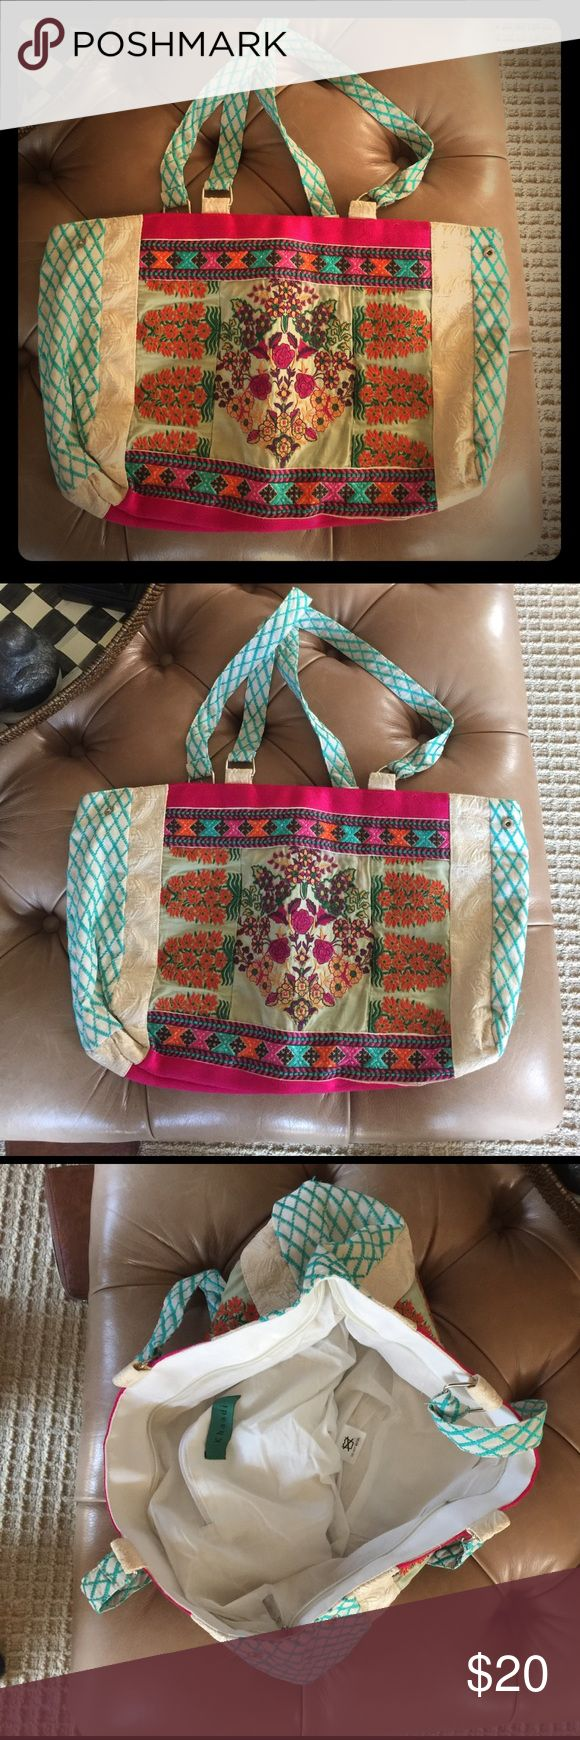 Beautiful boho bag Large and beautiful, Indian inspired bag. Bright and colorful, perfect for your boho chic outting! khaadi Bags Hobos